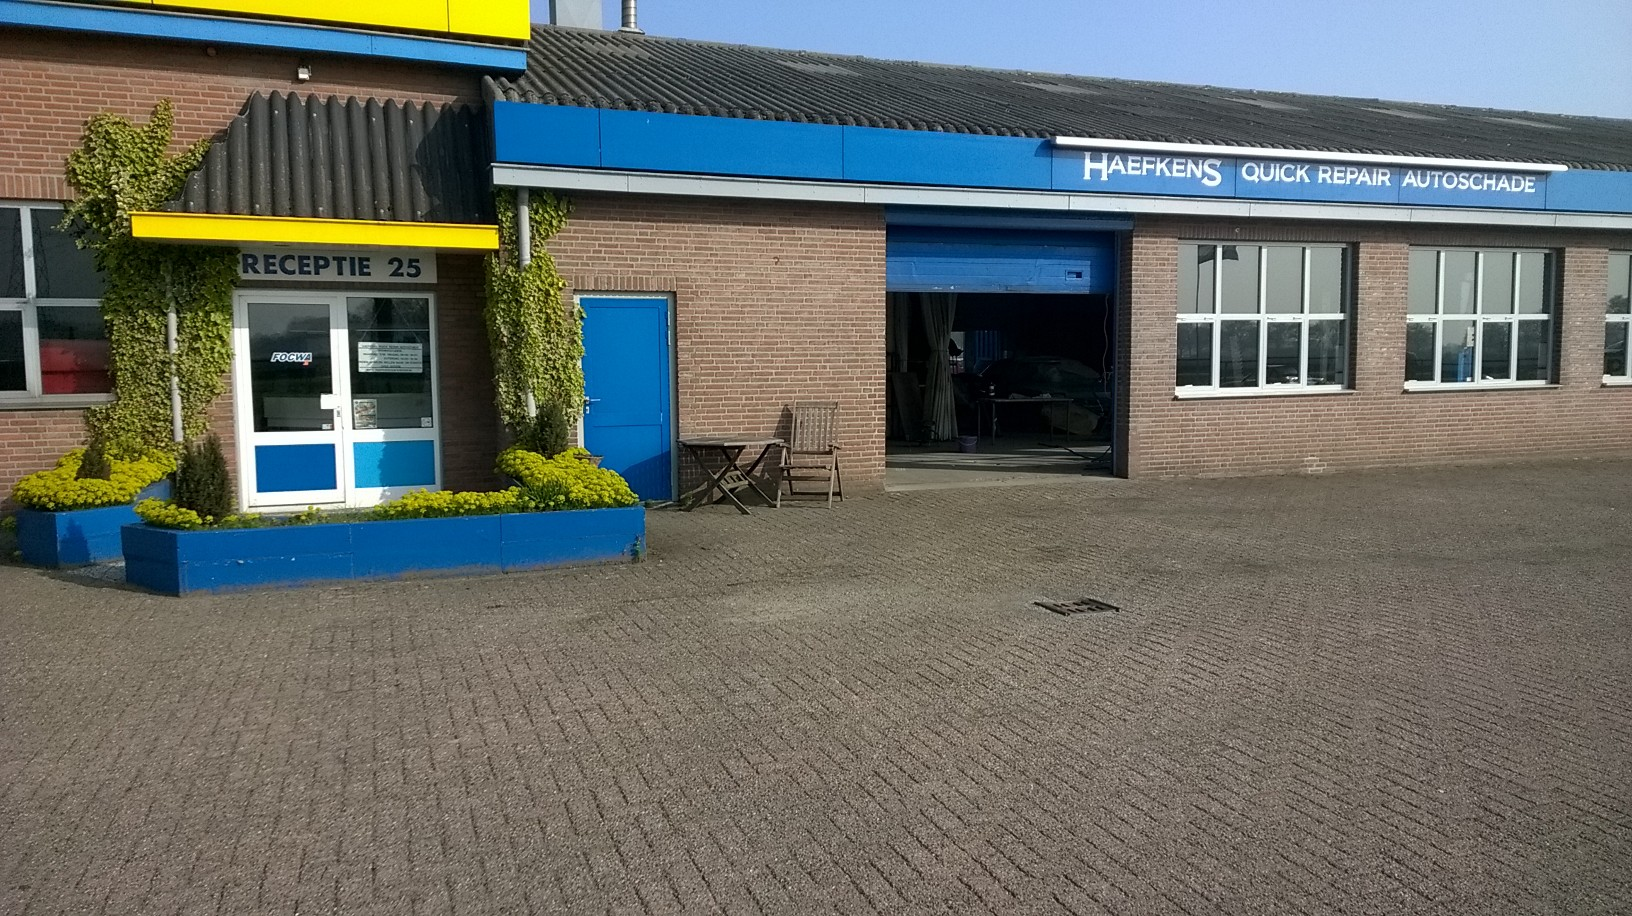 Haefkens quick repair autoschade fixico for Garage brothers utrecht ervaring